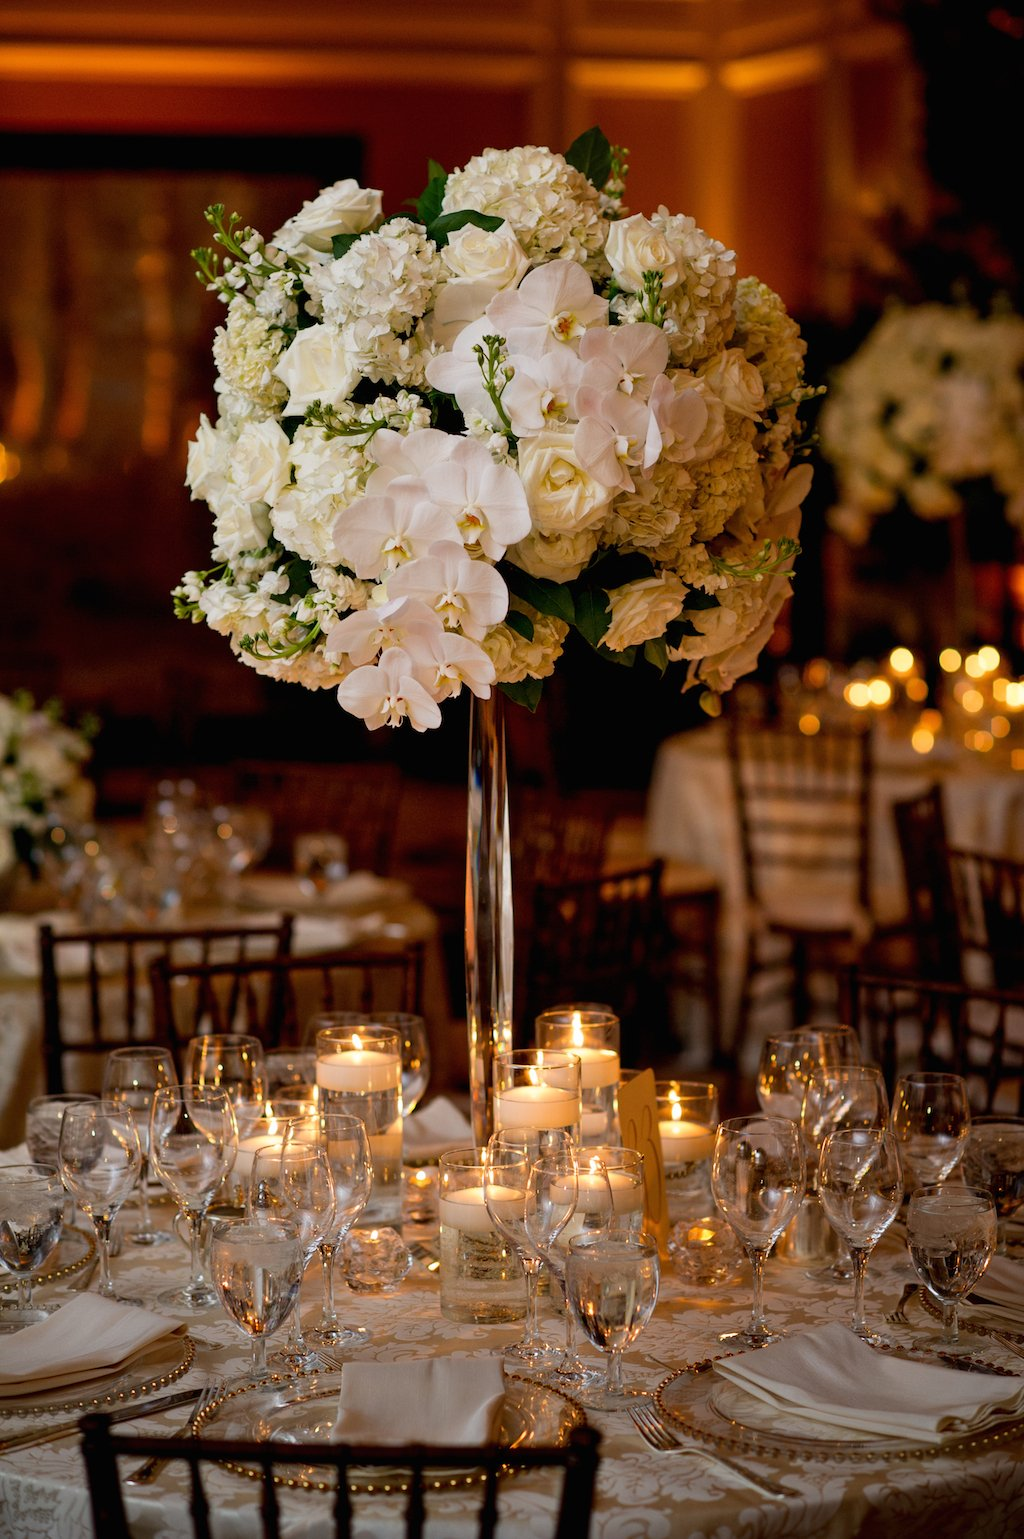 2-19-16-giant-floral-chuppah-ritz-carlton-classic-wedding-12